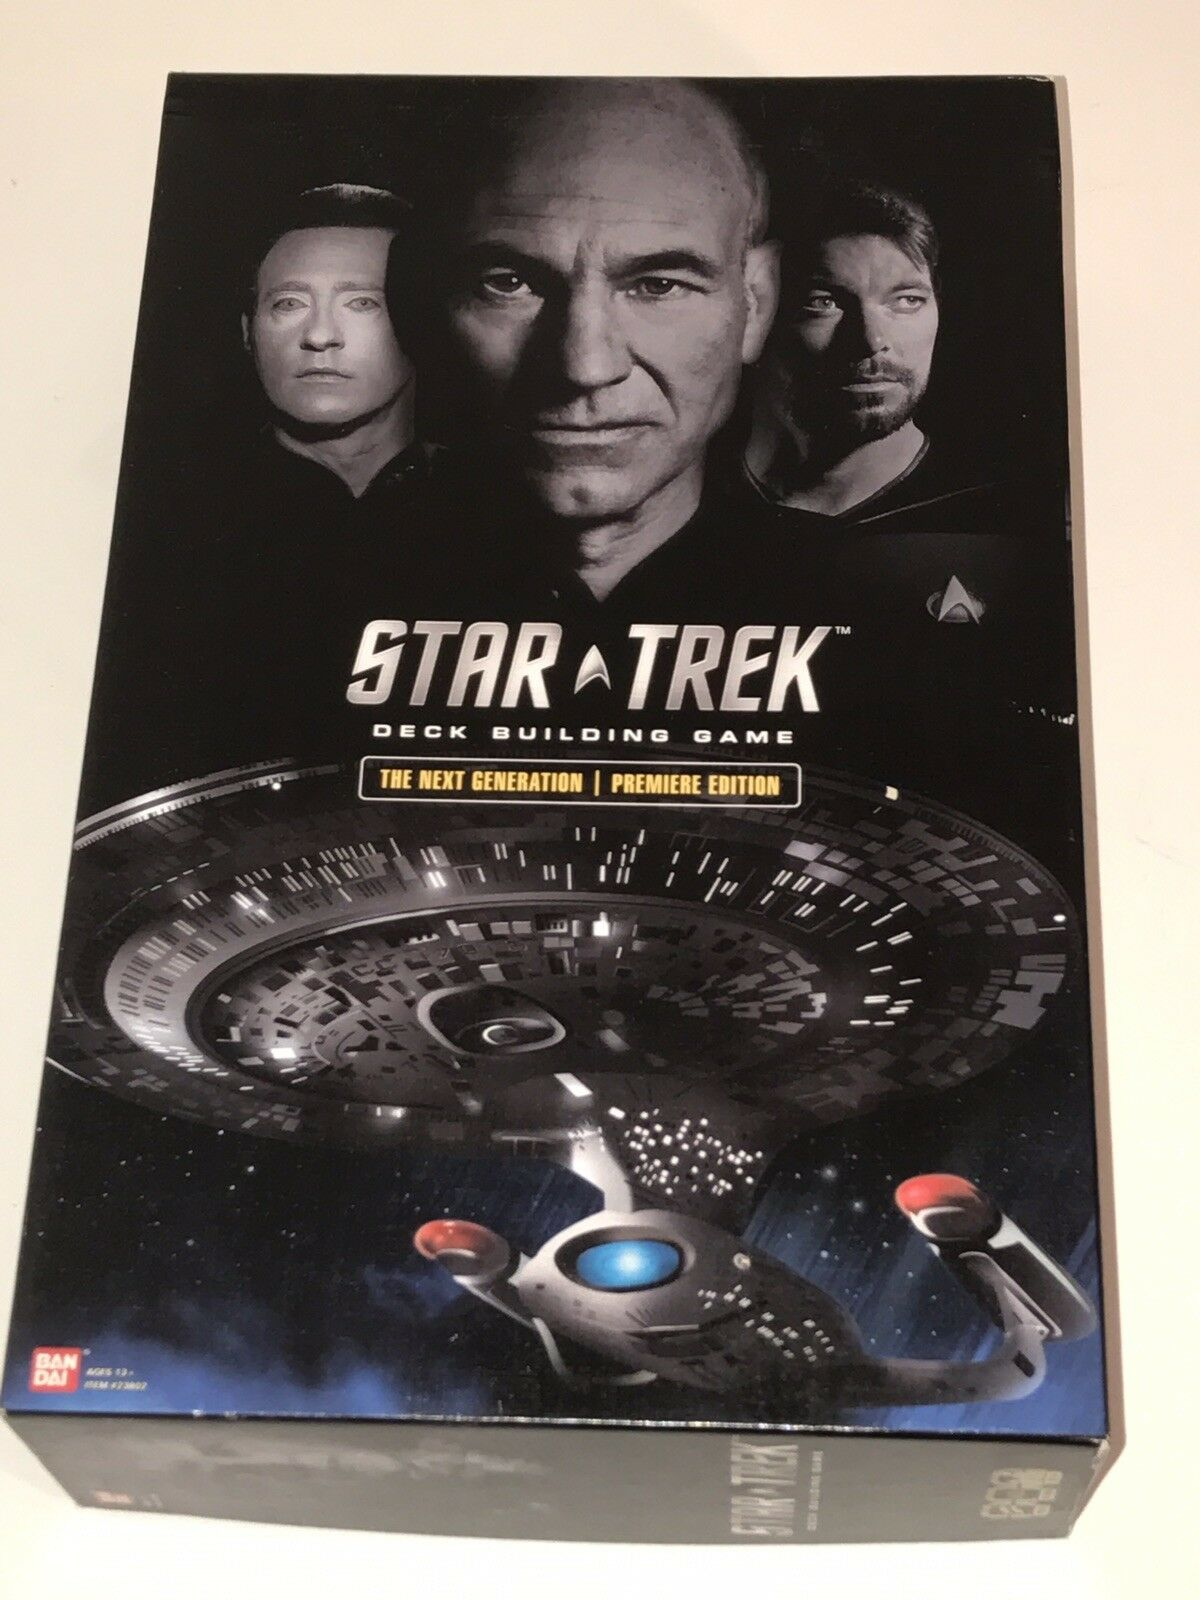 Star Trek The Next Generation PREMIERE EDITION Deck Building Game 100% Complete